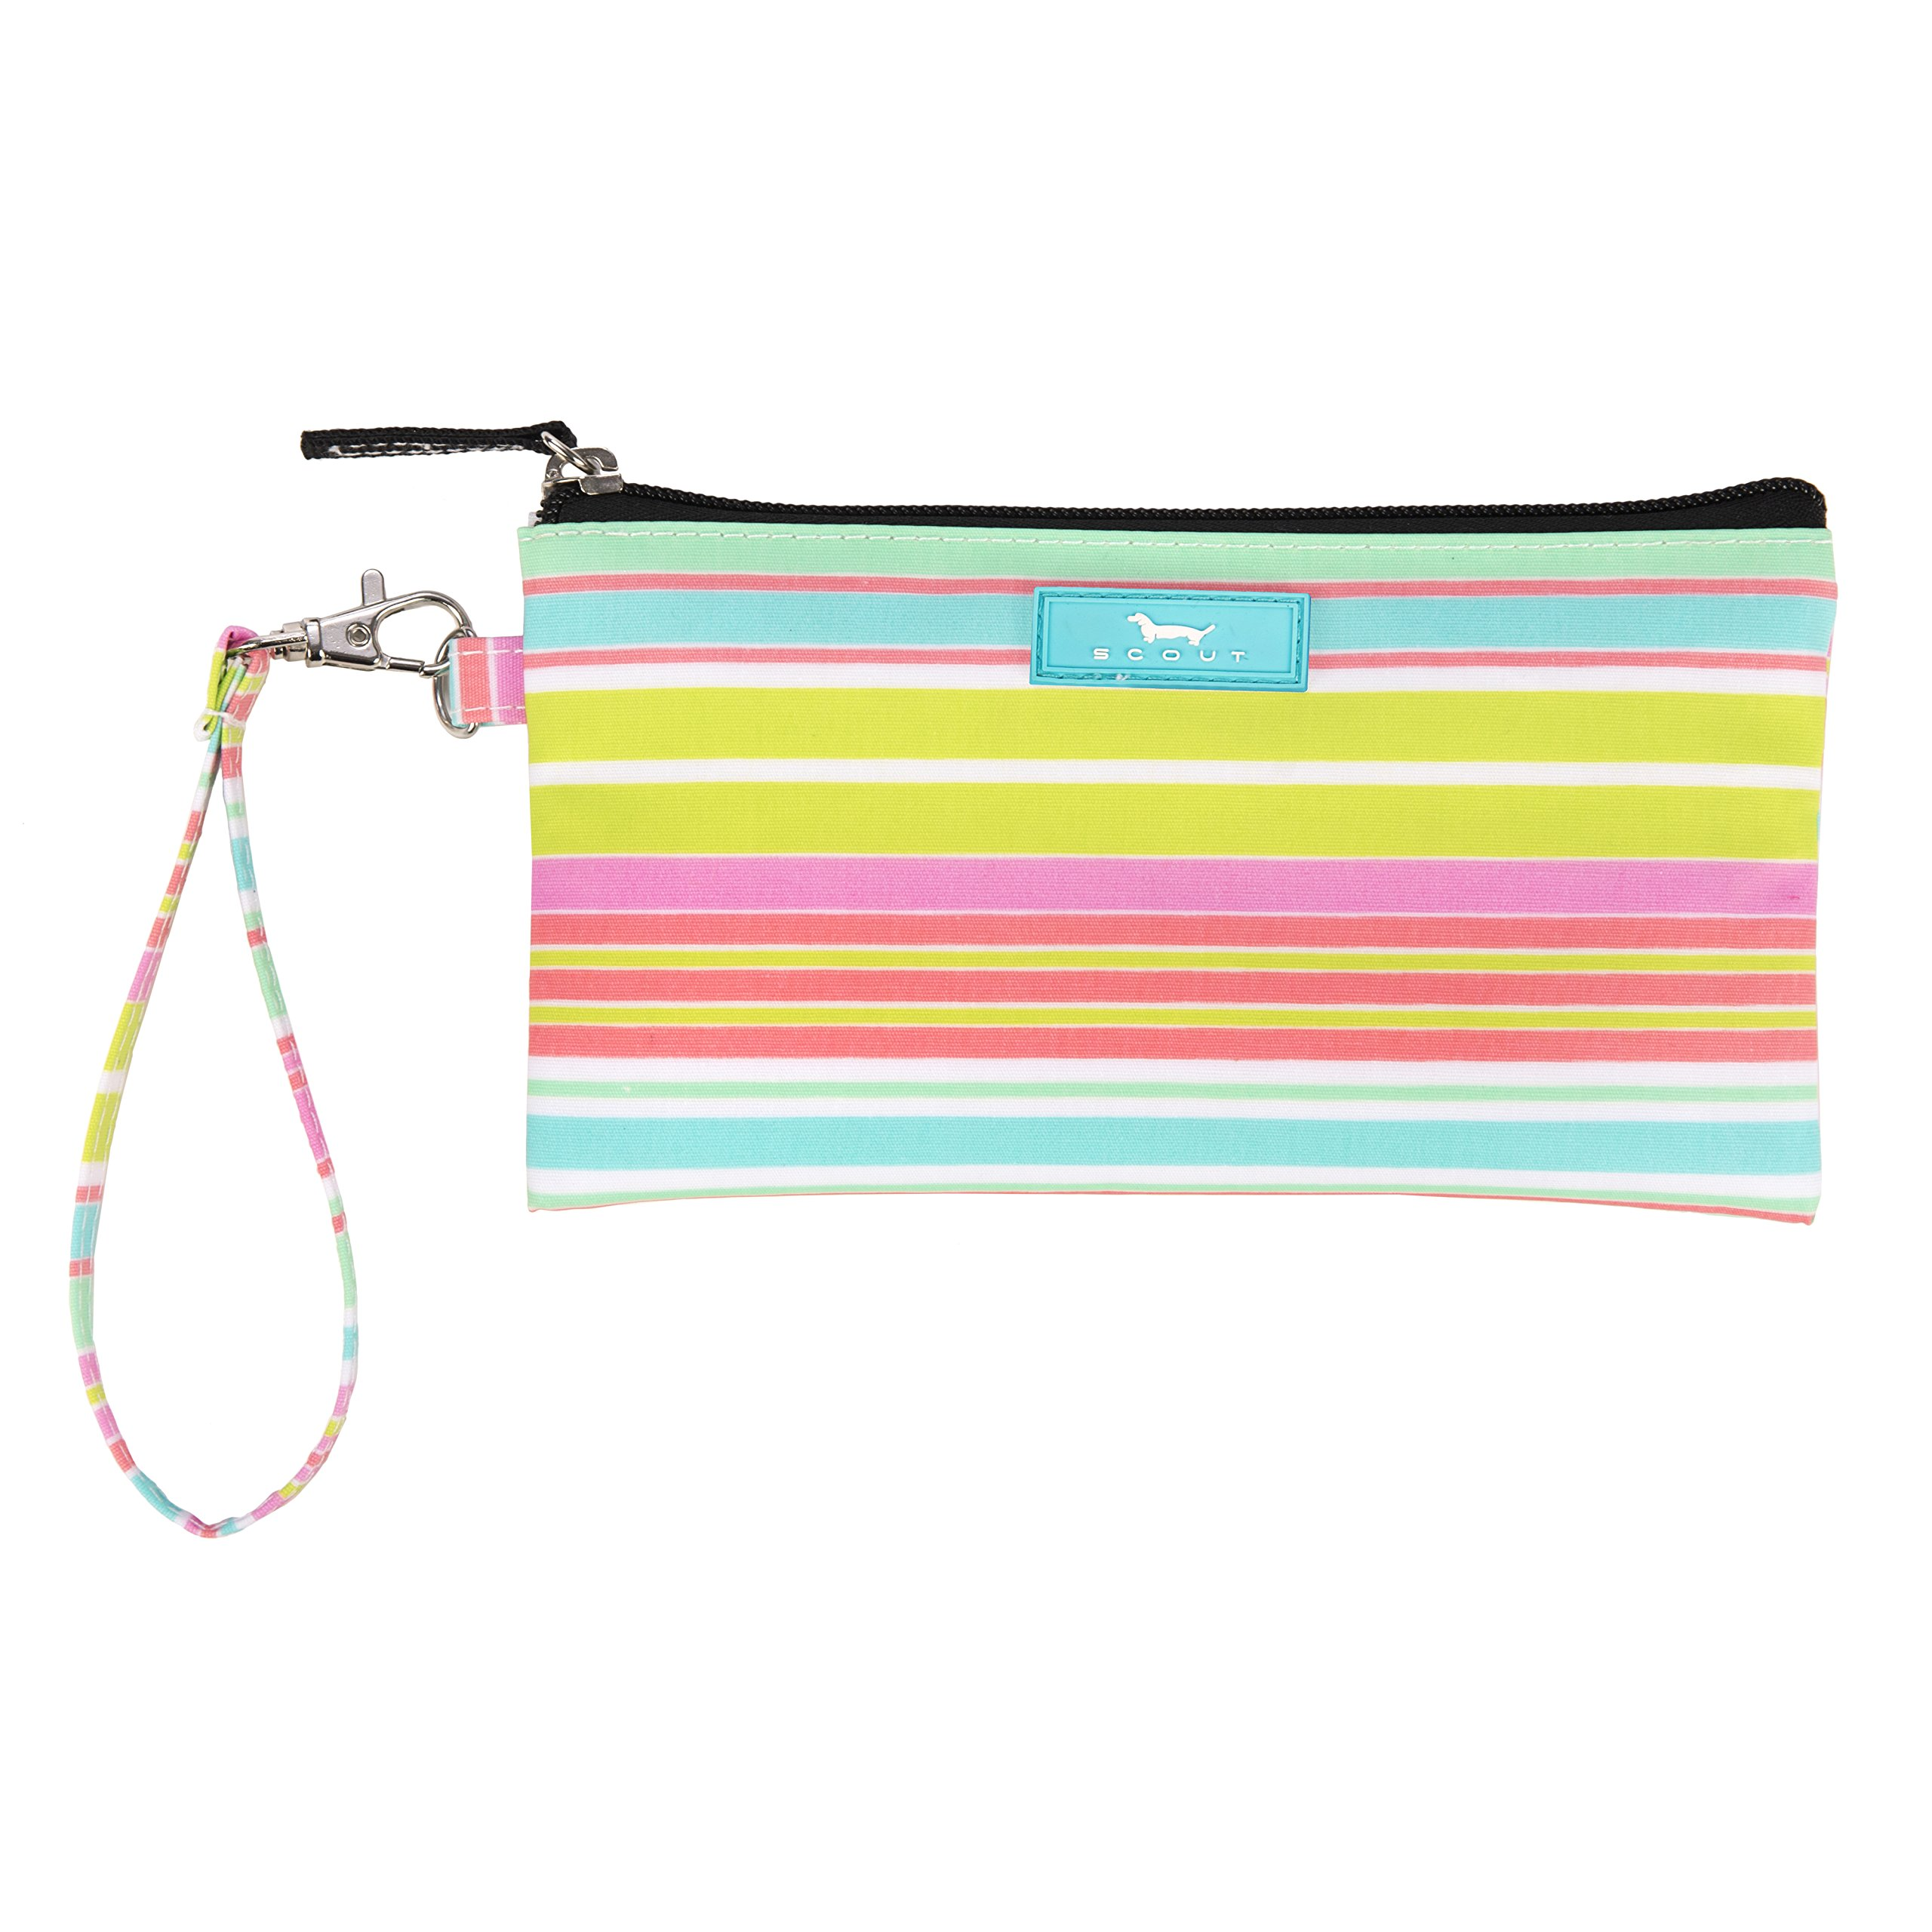 SCOUT Kate Wristlet, Essential Lightweight Clutch, Fits iPhone 6-8, Removable Strap, Water Resistant, Zips Closed, Sol Surfer